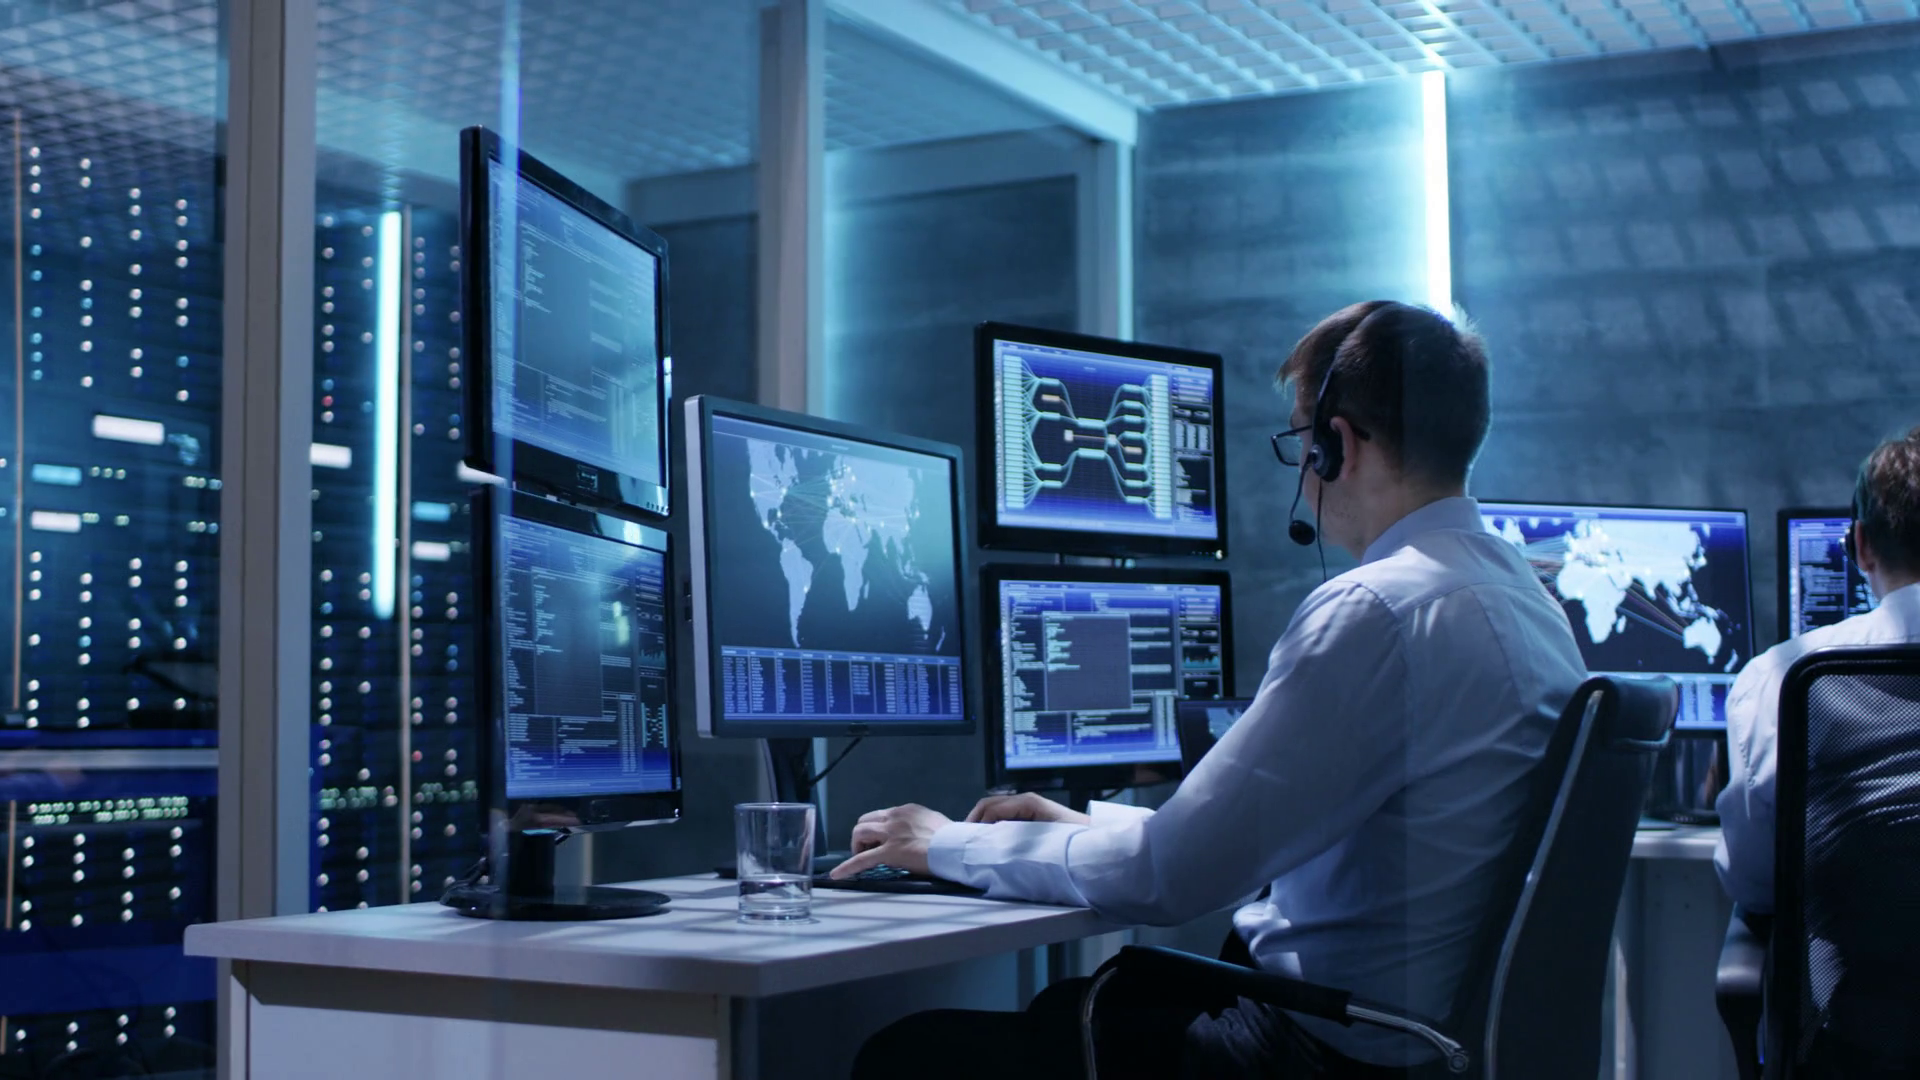 videoblocks-panorama-shot-of-system-control-room-with-three-technical-controllers-working-at-their-workstations-with-multiple-displays-shot-on-red-epic-w-8k-helium-cinema-camera_bxj_vrorx_thumbnail-full01.png